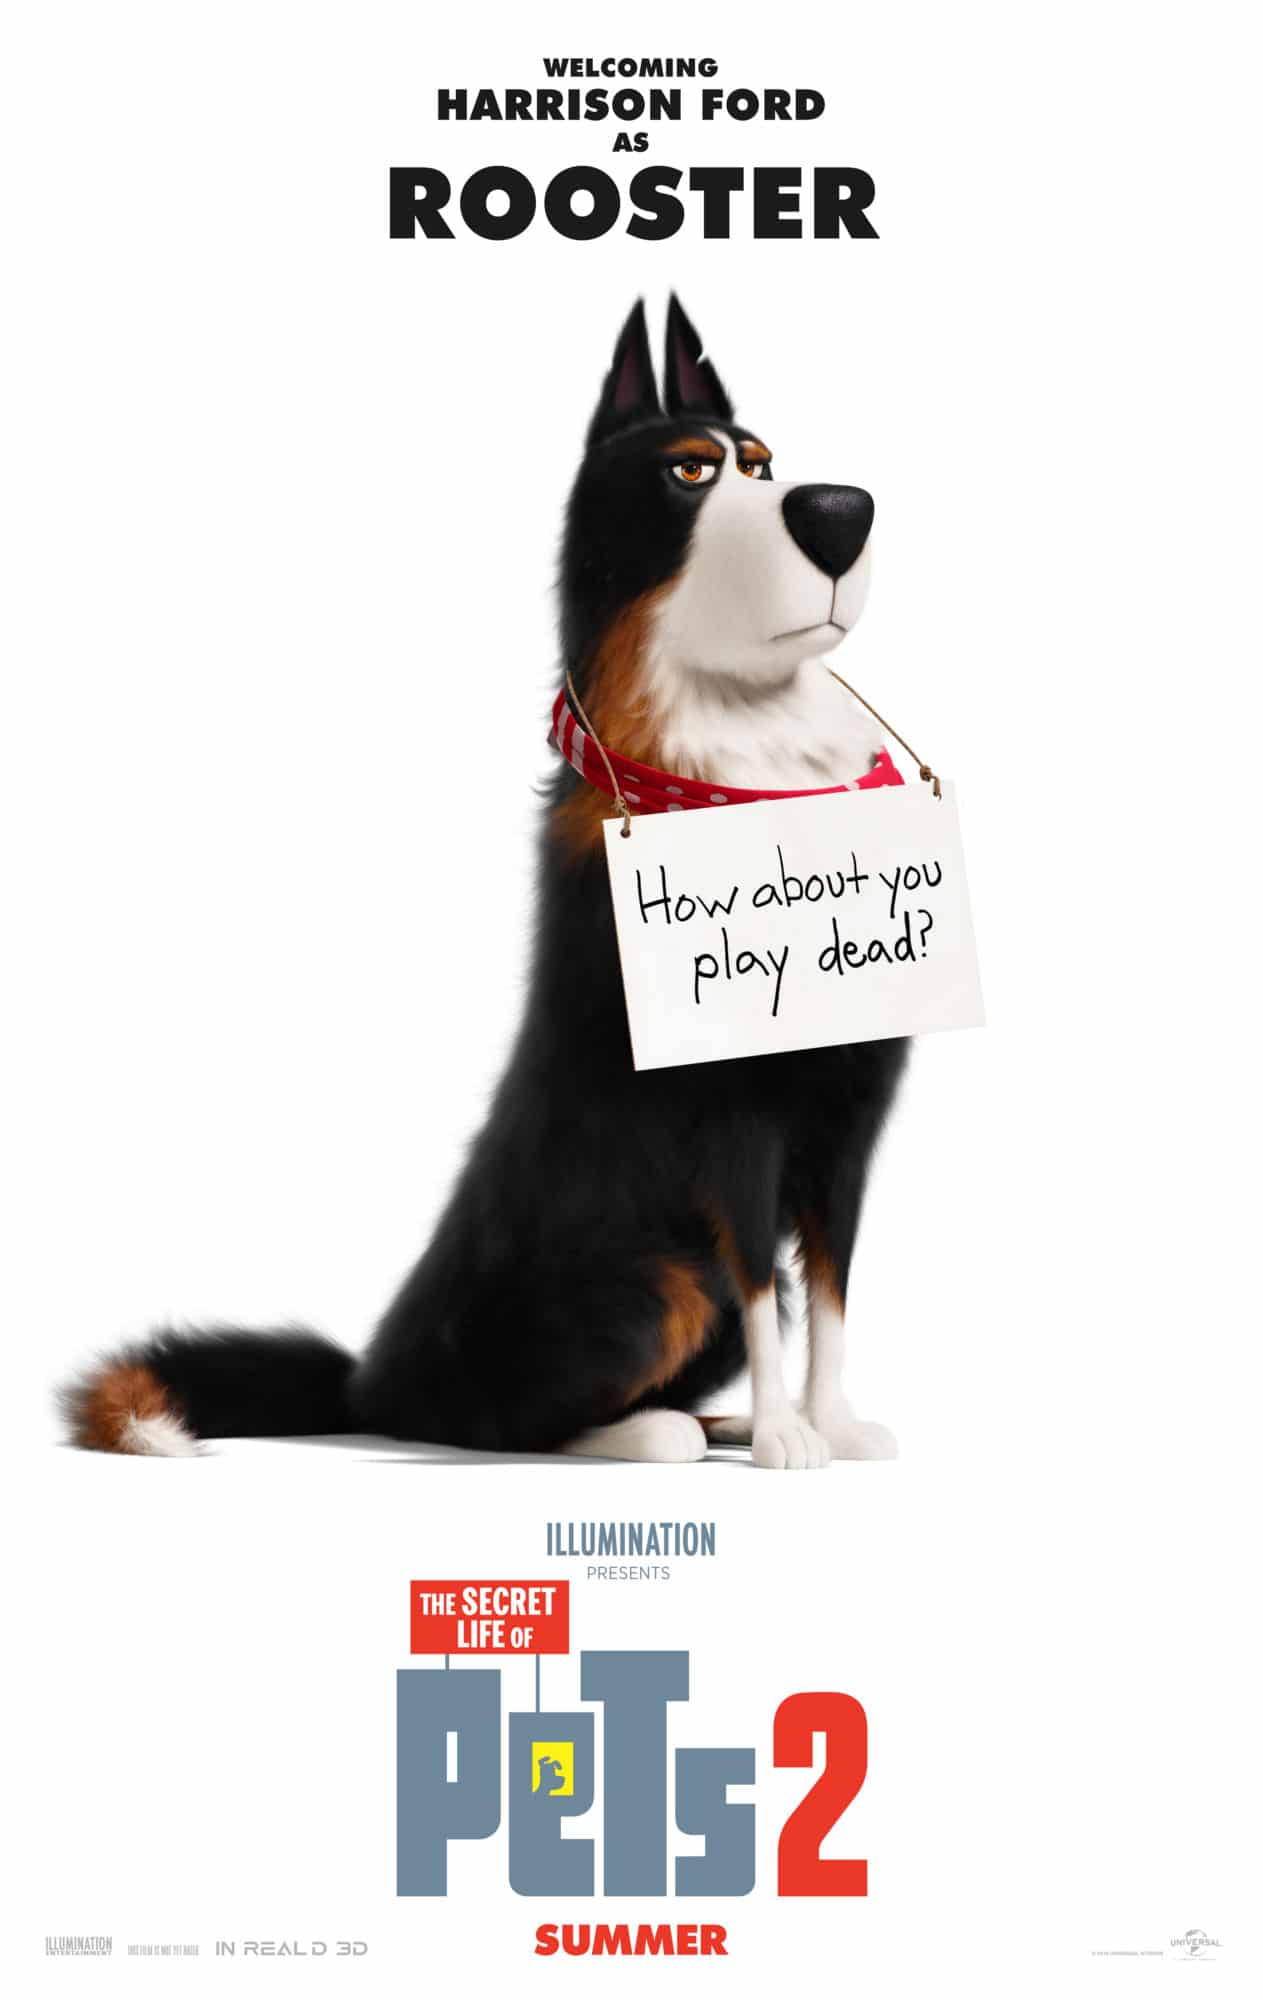 Meet Harrison Ford as Rooster in This New the Secret Life of Pets 2